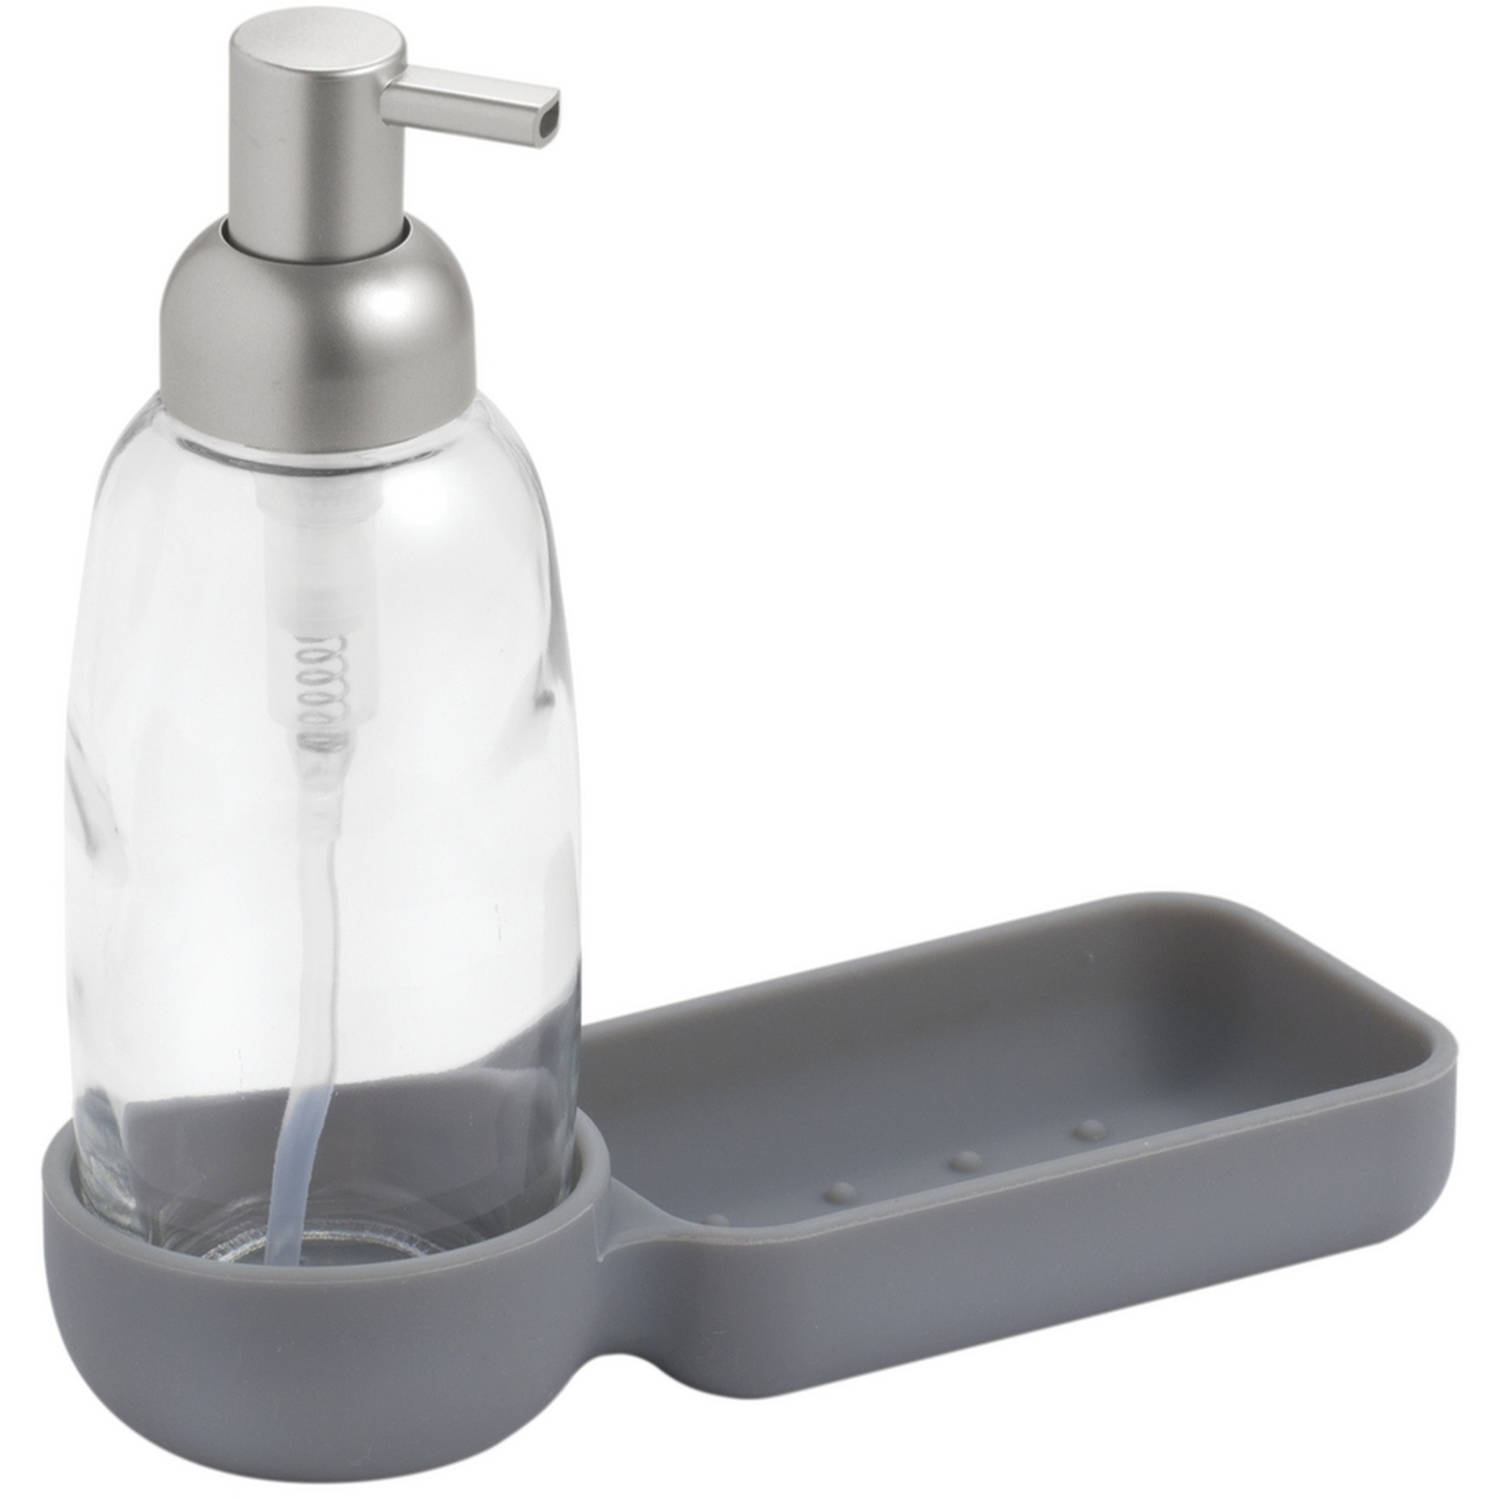 Interdesign Lineo Kitchen Glass And Silicone Soap Dispenser Pump Sponge Caddy Organizer Clear Gray Brushed Com